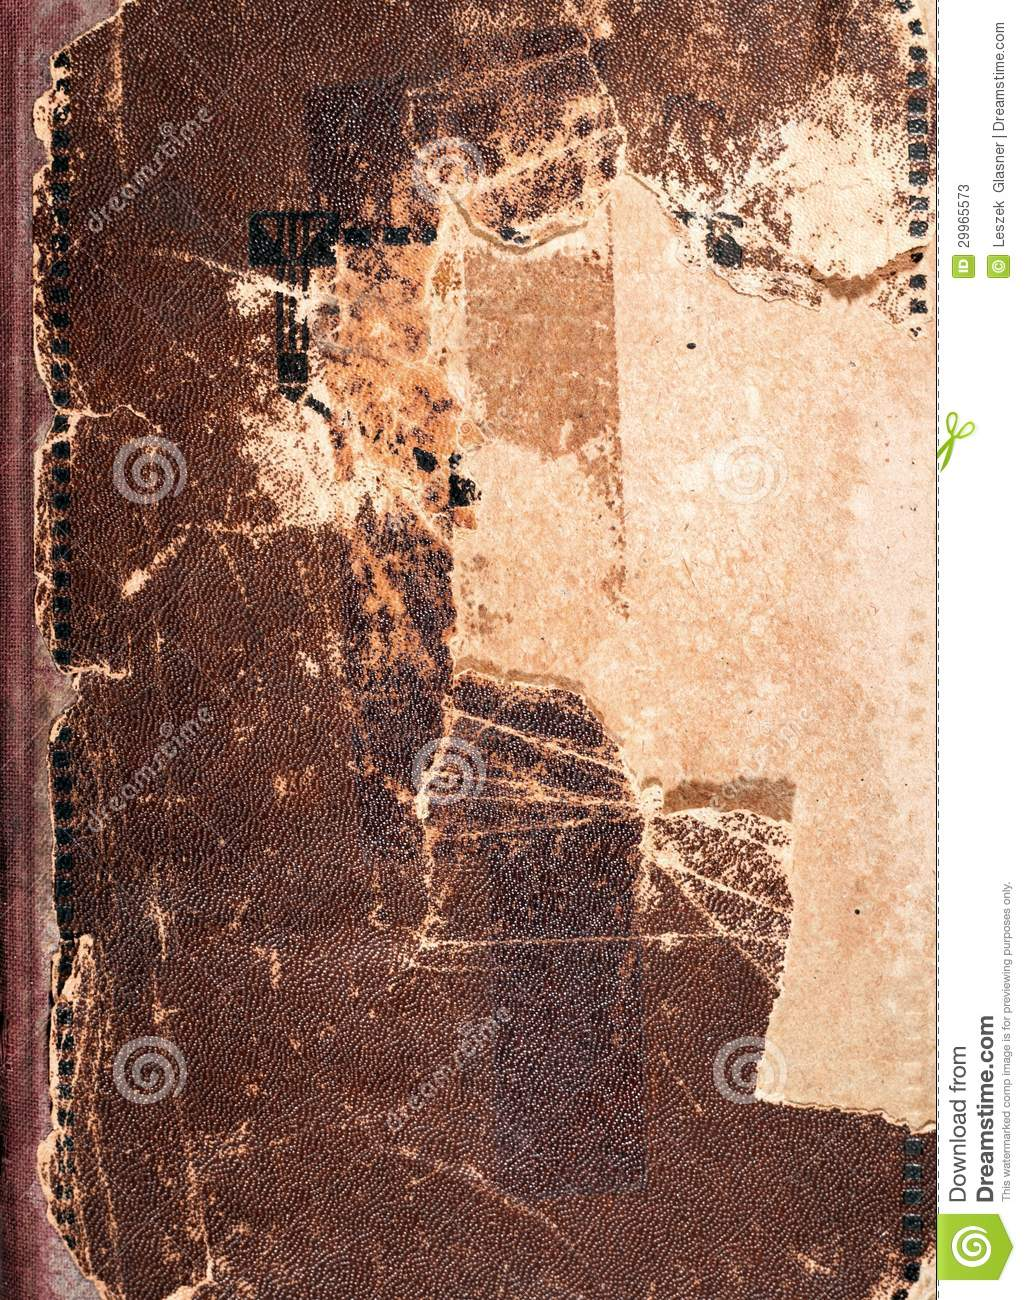 Antique Leather Book Cover Texture : Old book cover texture brown leather and paper stock